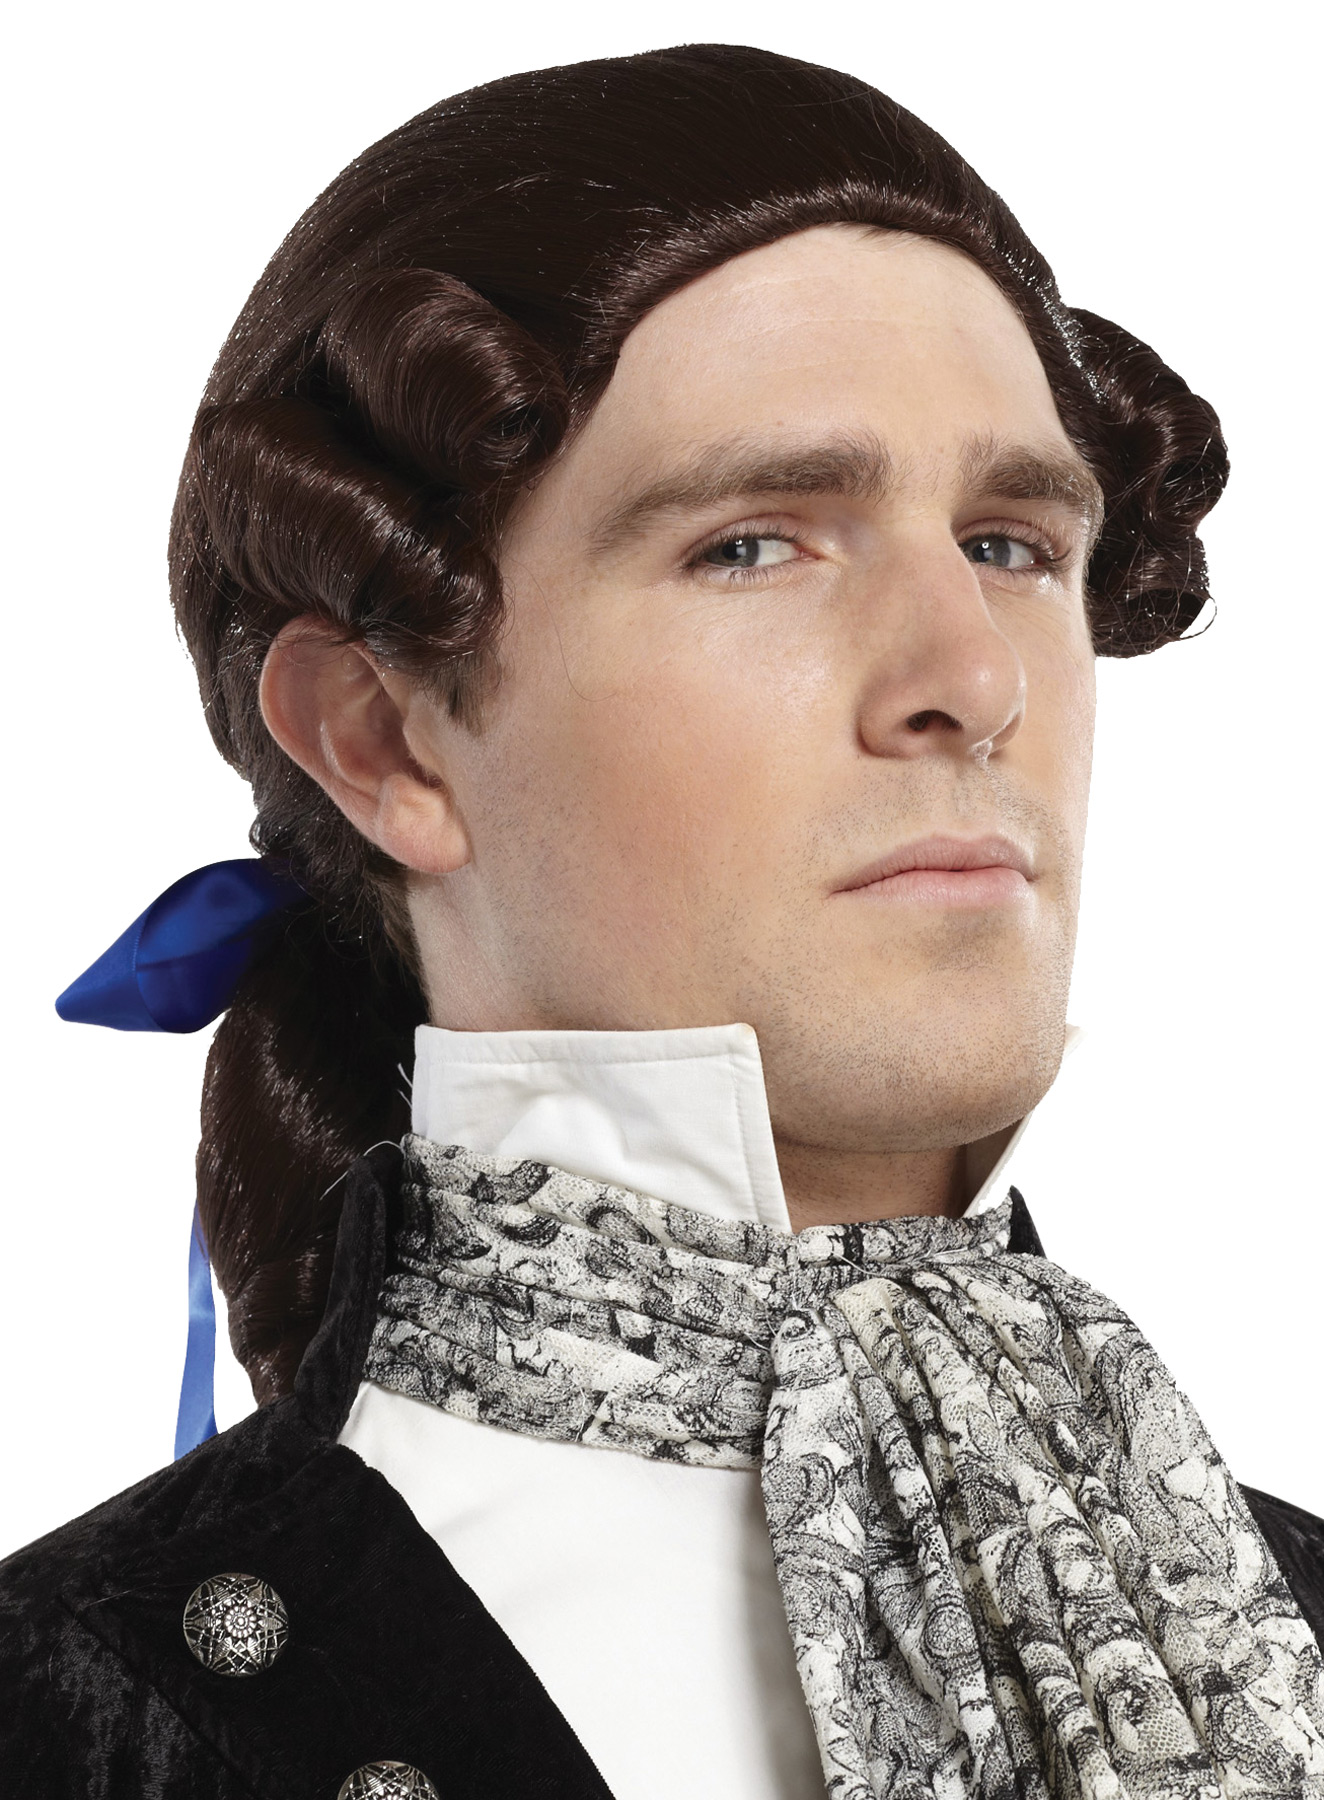 Colonial Halloween Costumes